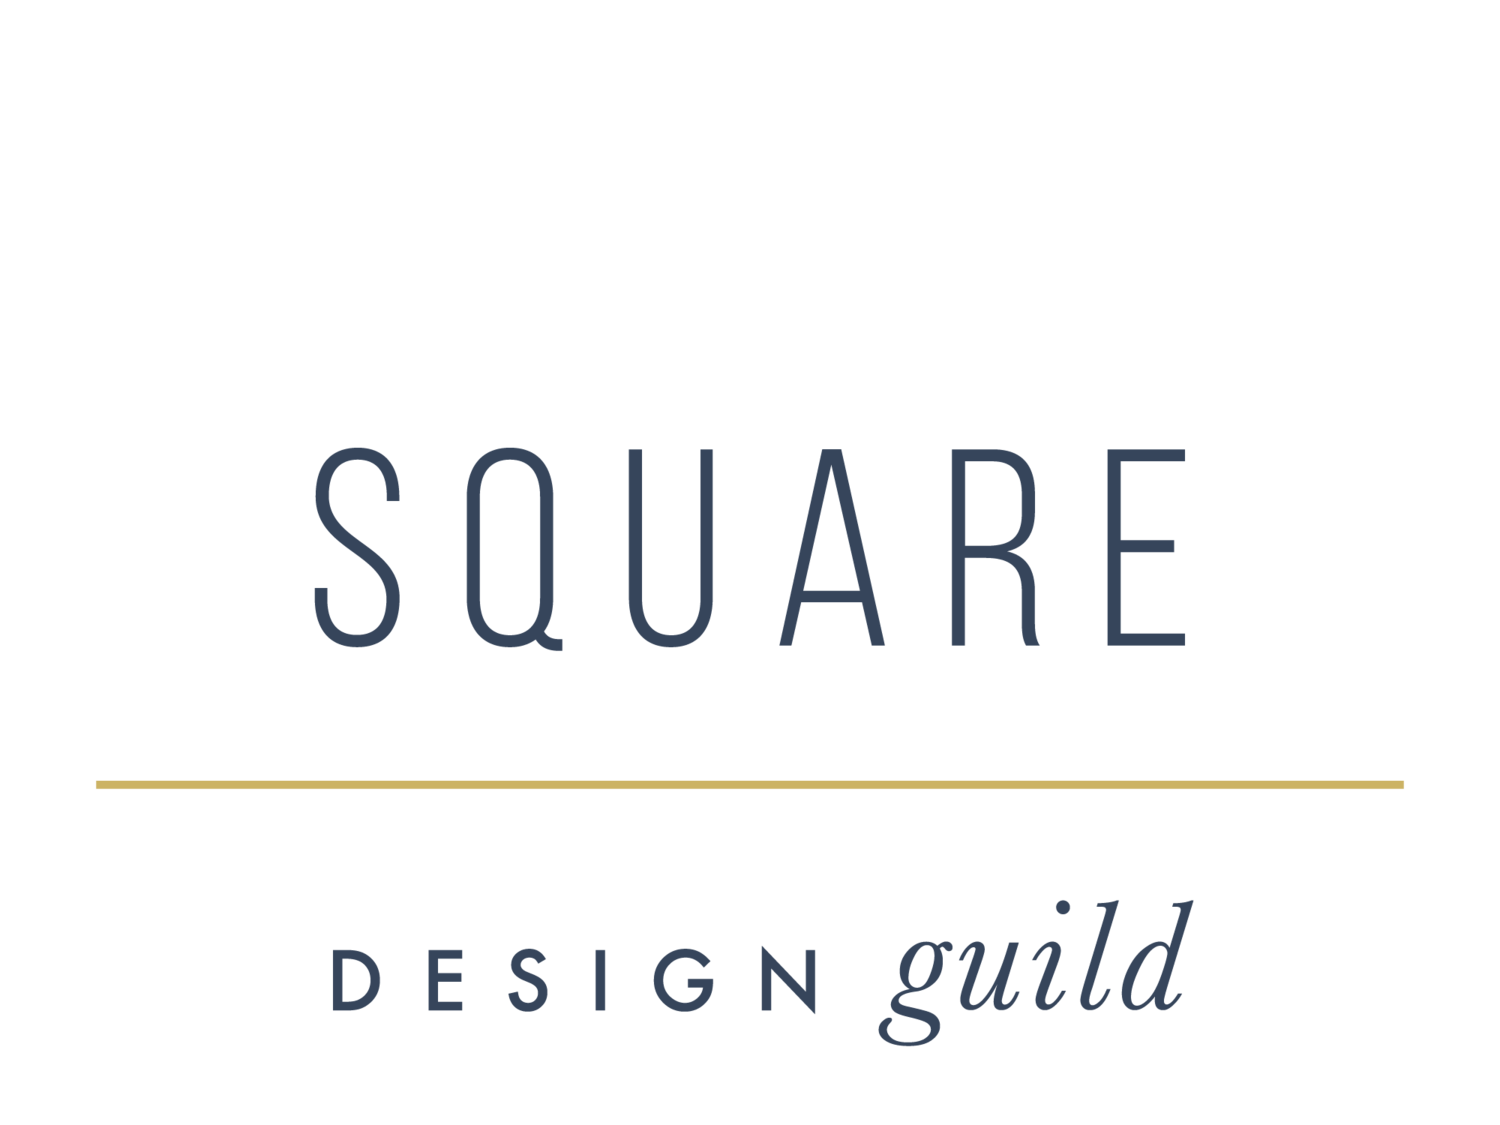 Squarespace Design Guild